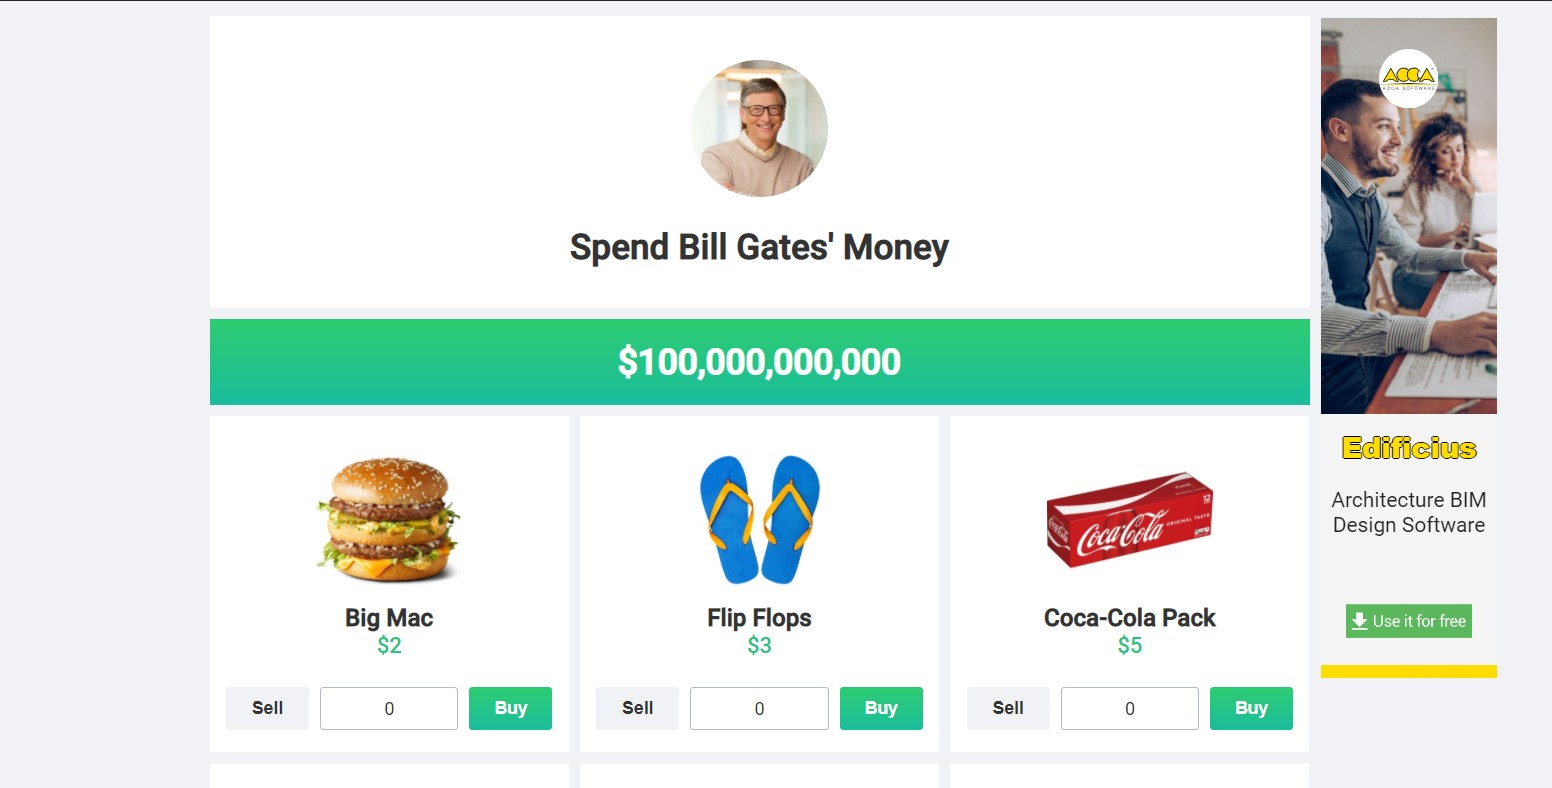 Can You Spend Bill Gates' Money: Find Out How! - Ewuta